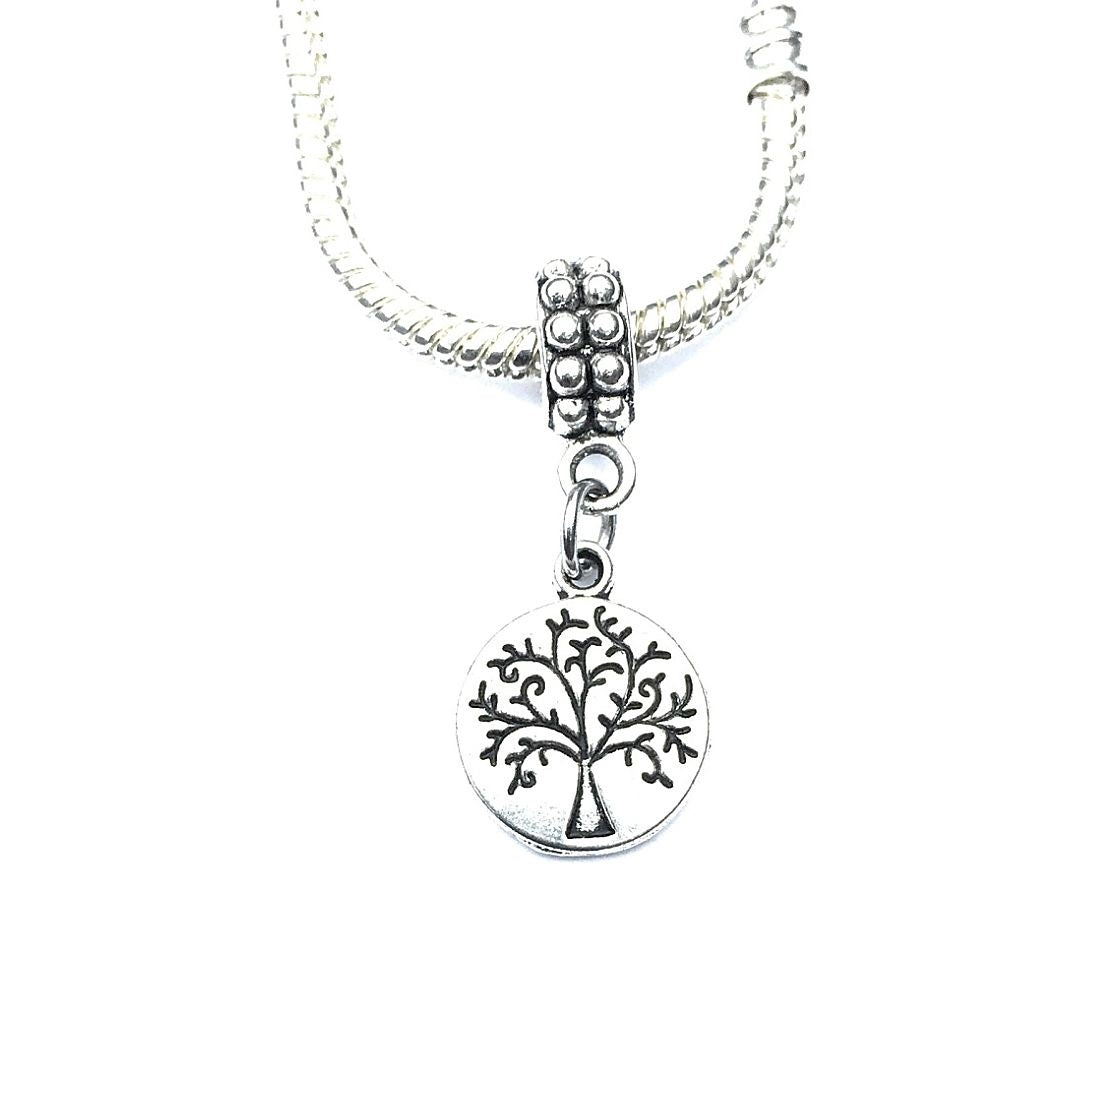 Handcrafted Silver Tree of Life Charm Bead for Bracelet.